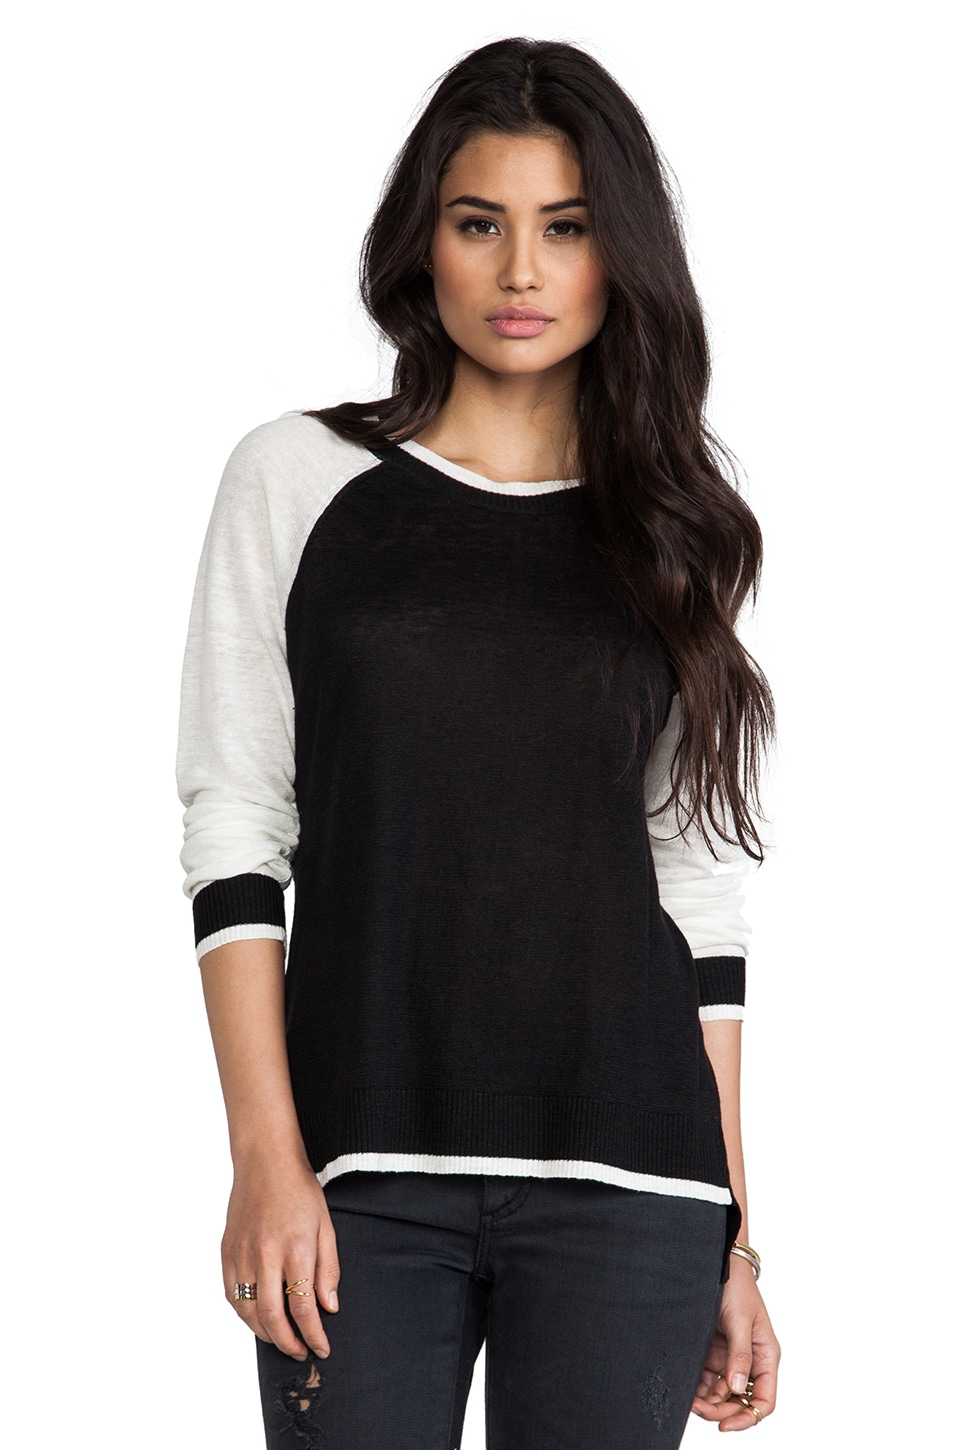 Central Park West Zanzibar Athletic Sweater in Black Multi